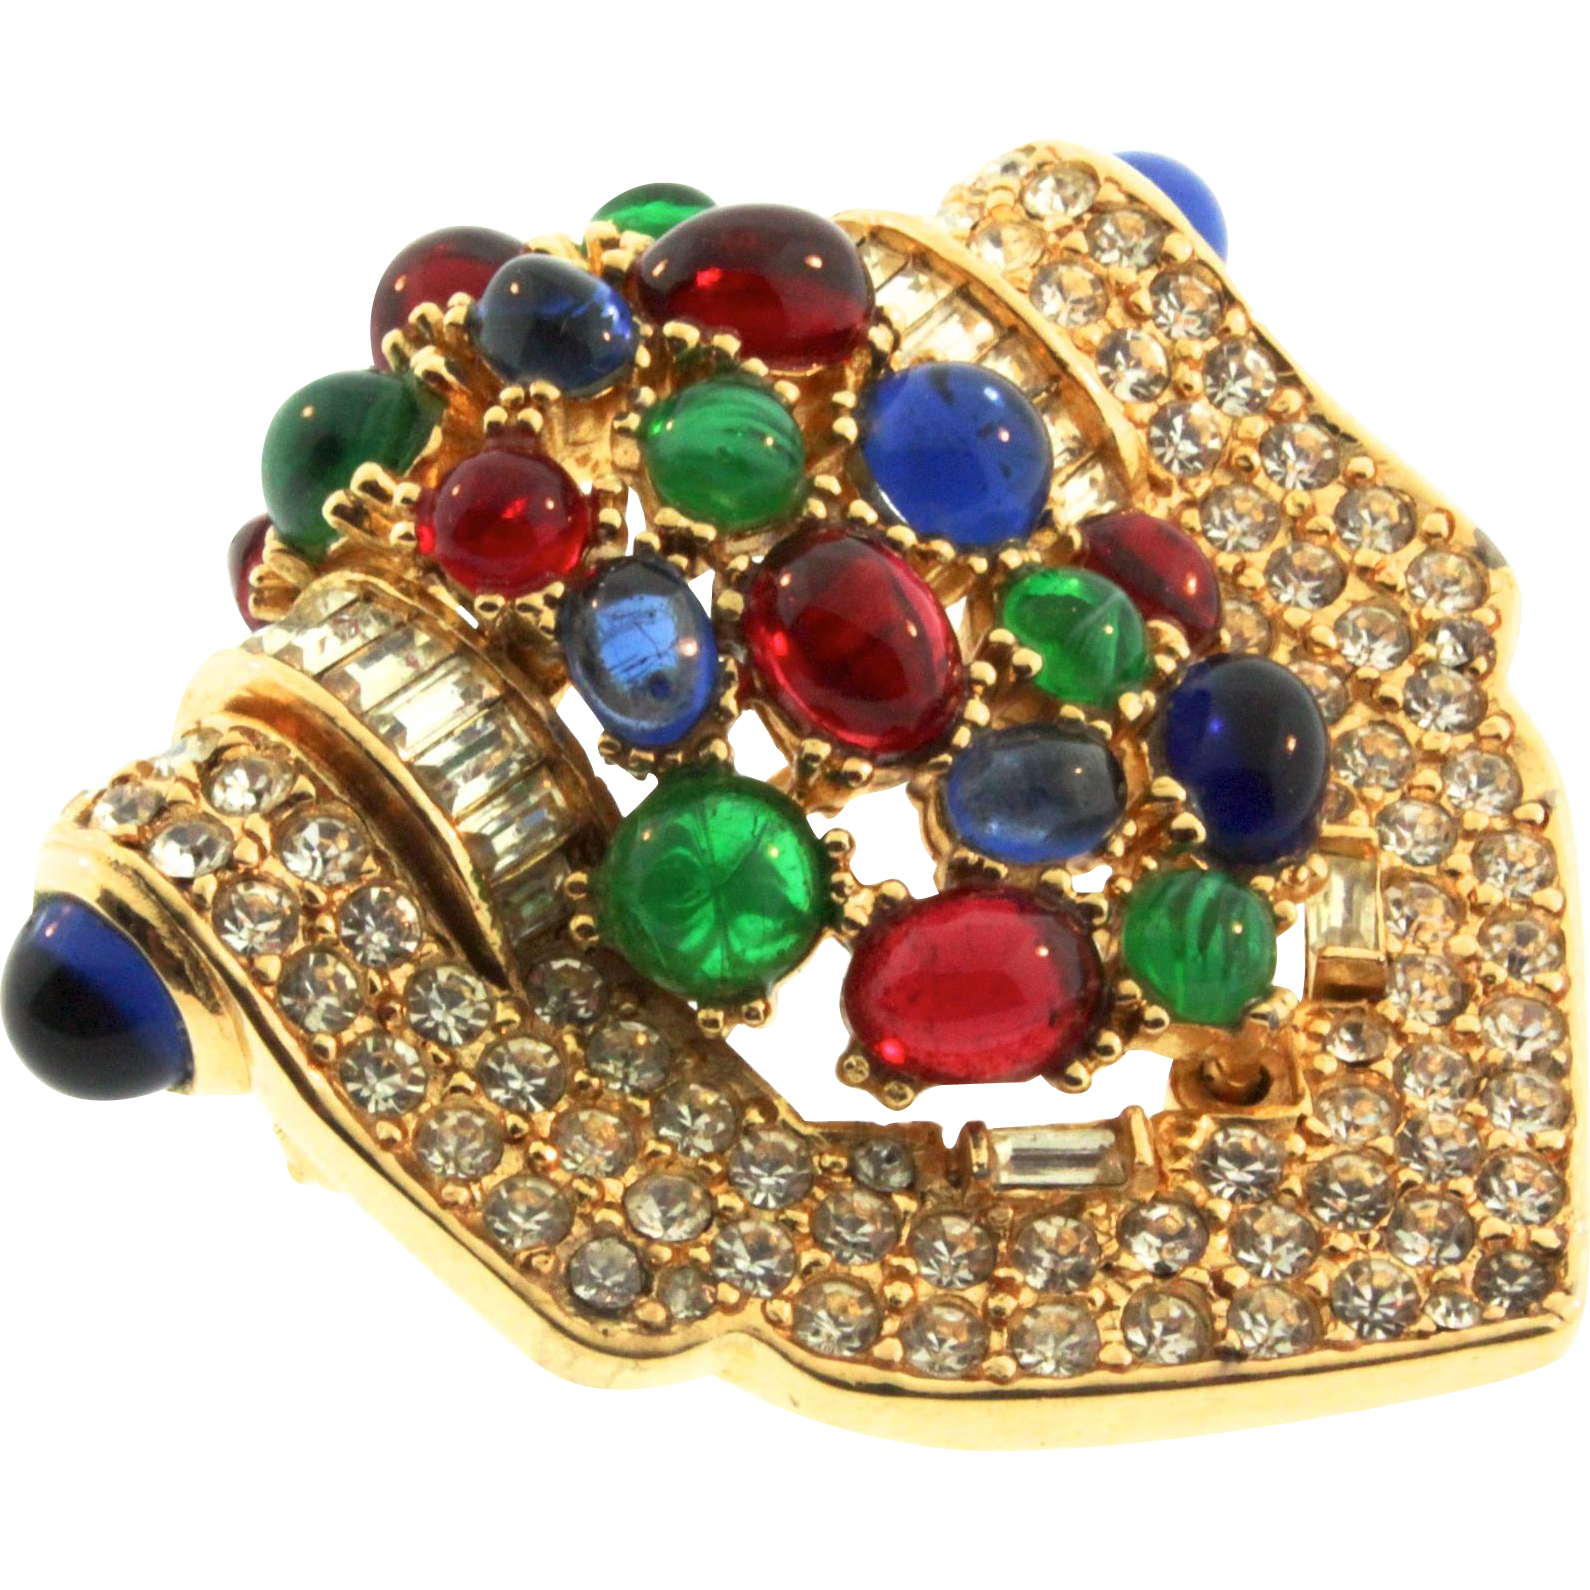 of jewel brooch s brooches pin hyderabad extravagant nizam maharaja the